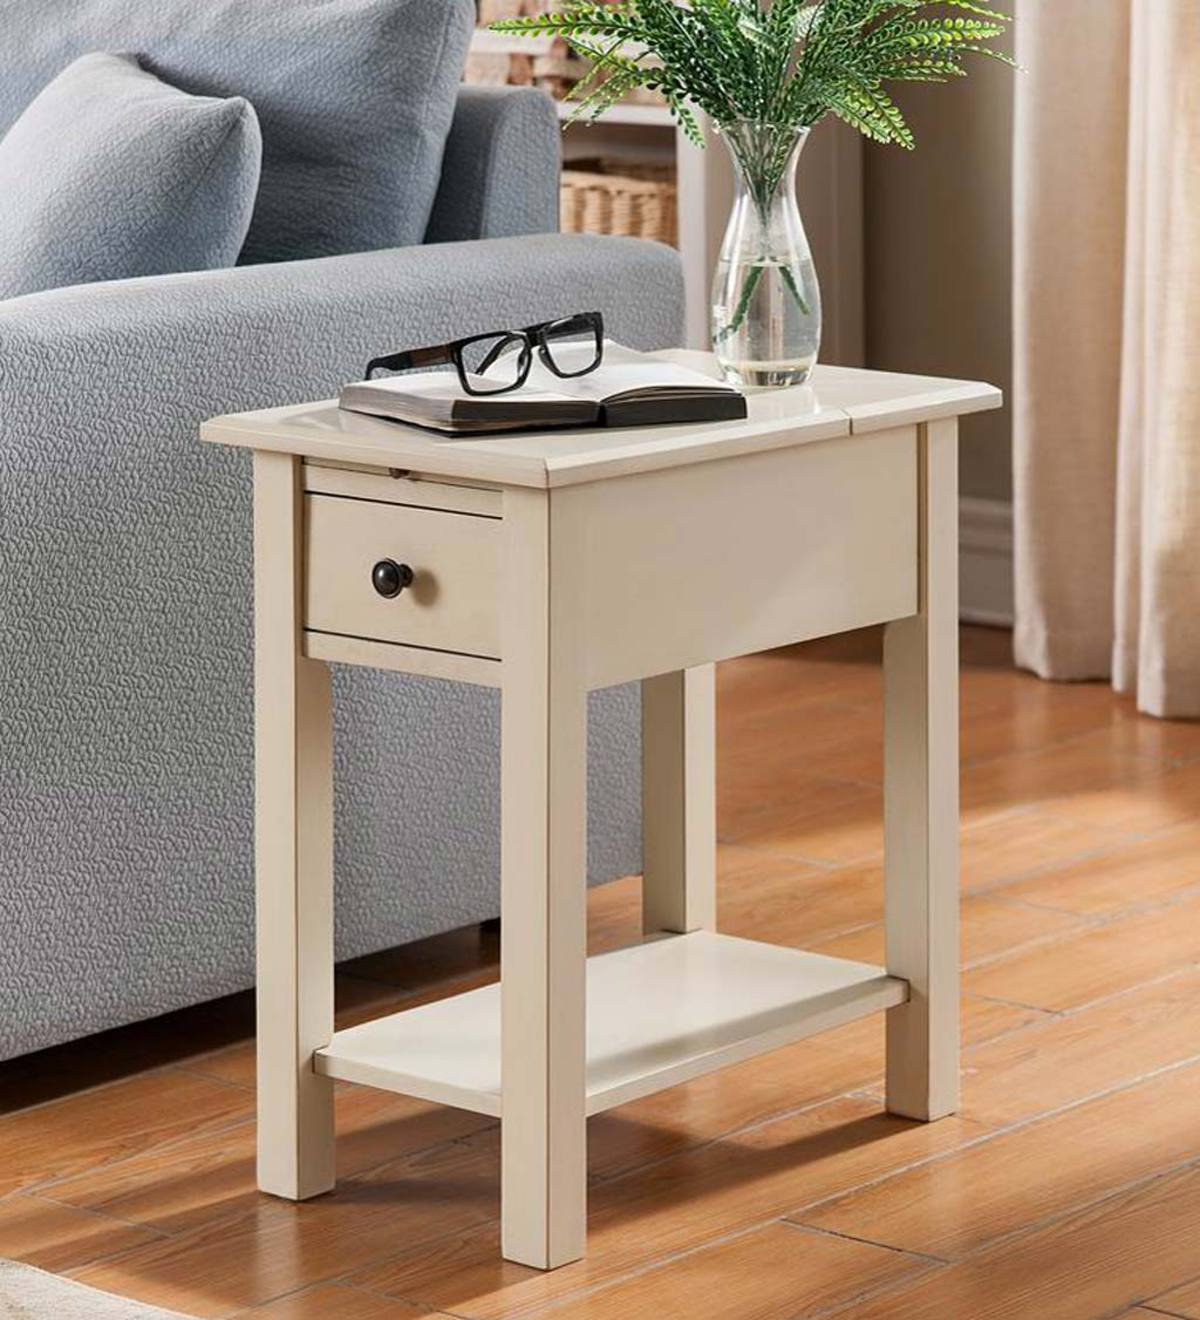 benton side table with charging station accent tables indoor wide nightstand glass stacking end contemporary decorative accents for living room farmhouse coffee set ballard office